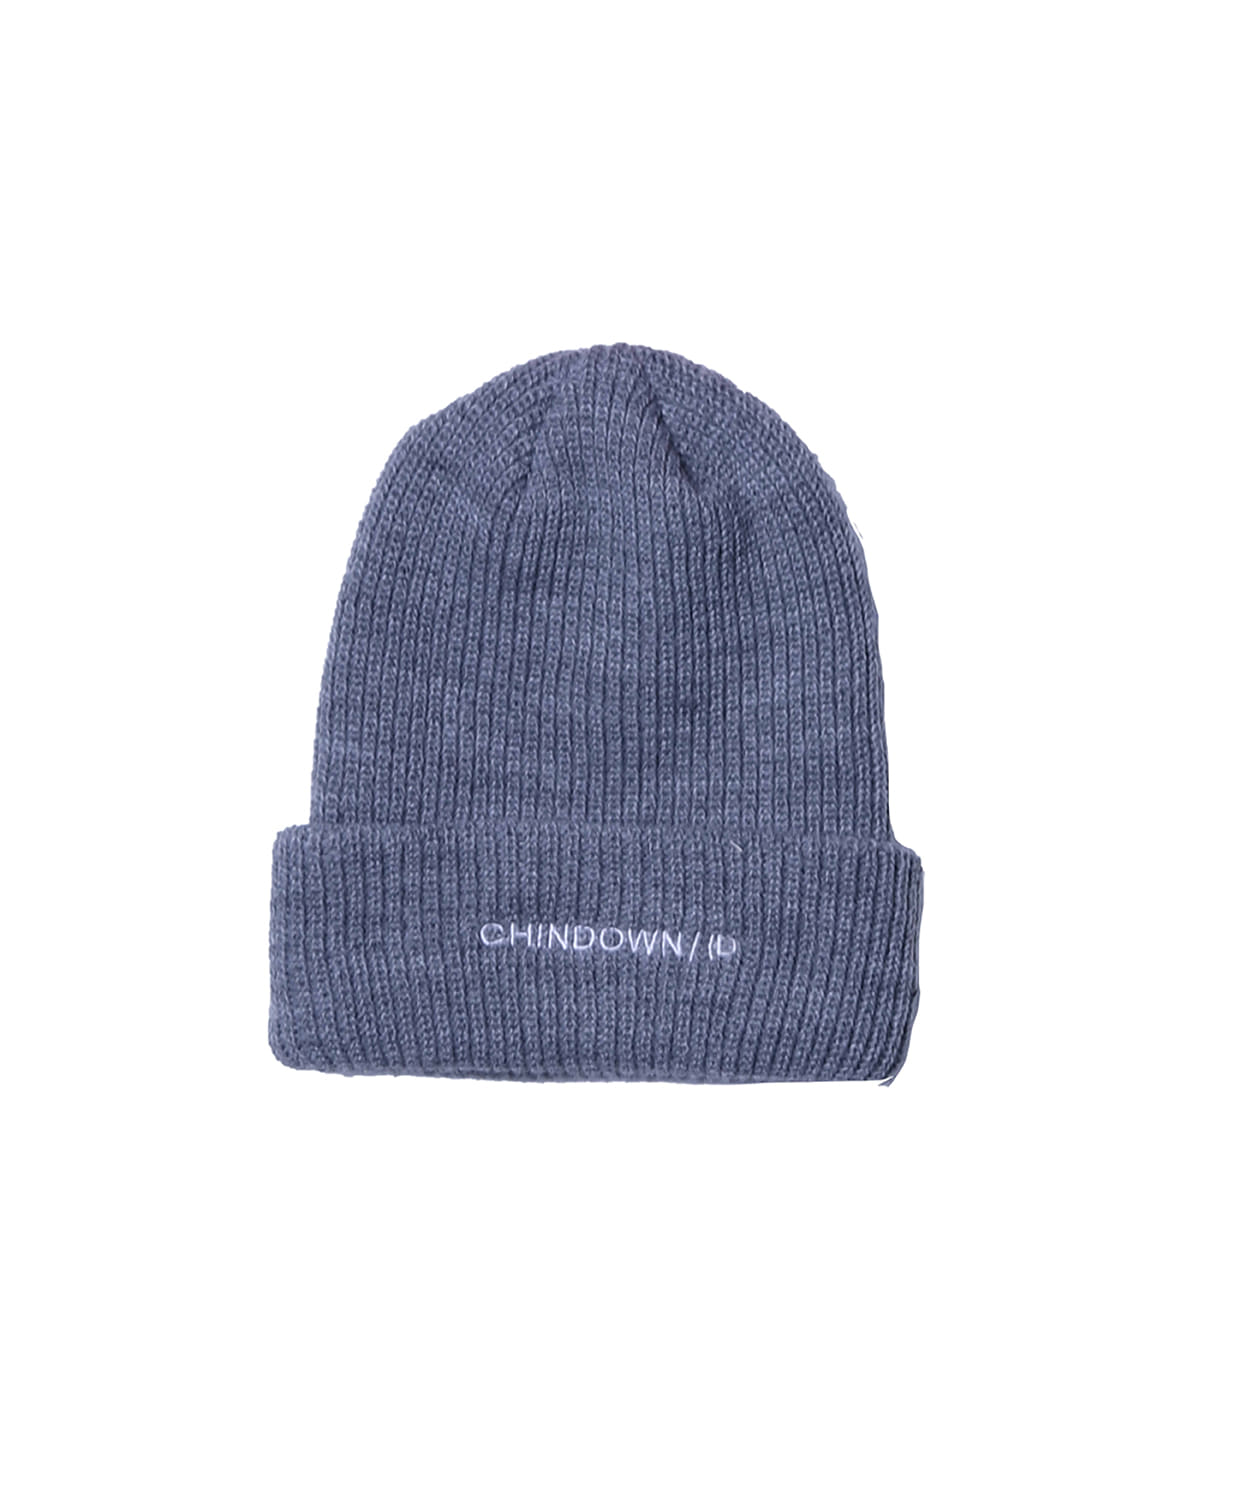 BASIC BEANIE CHINDOWN EMBROIDERED (GREY)